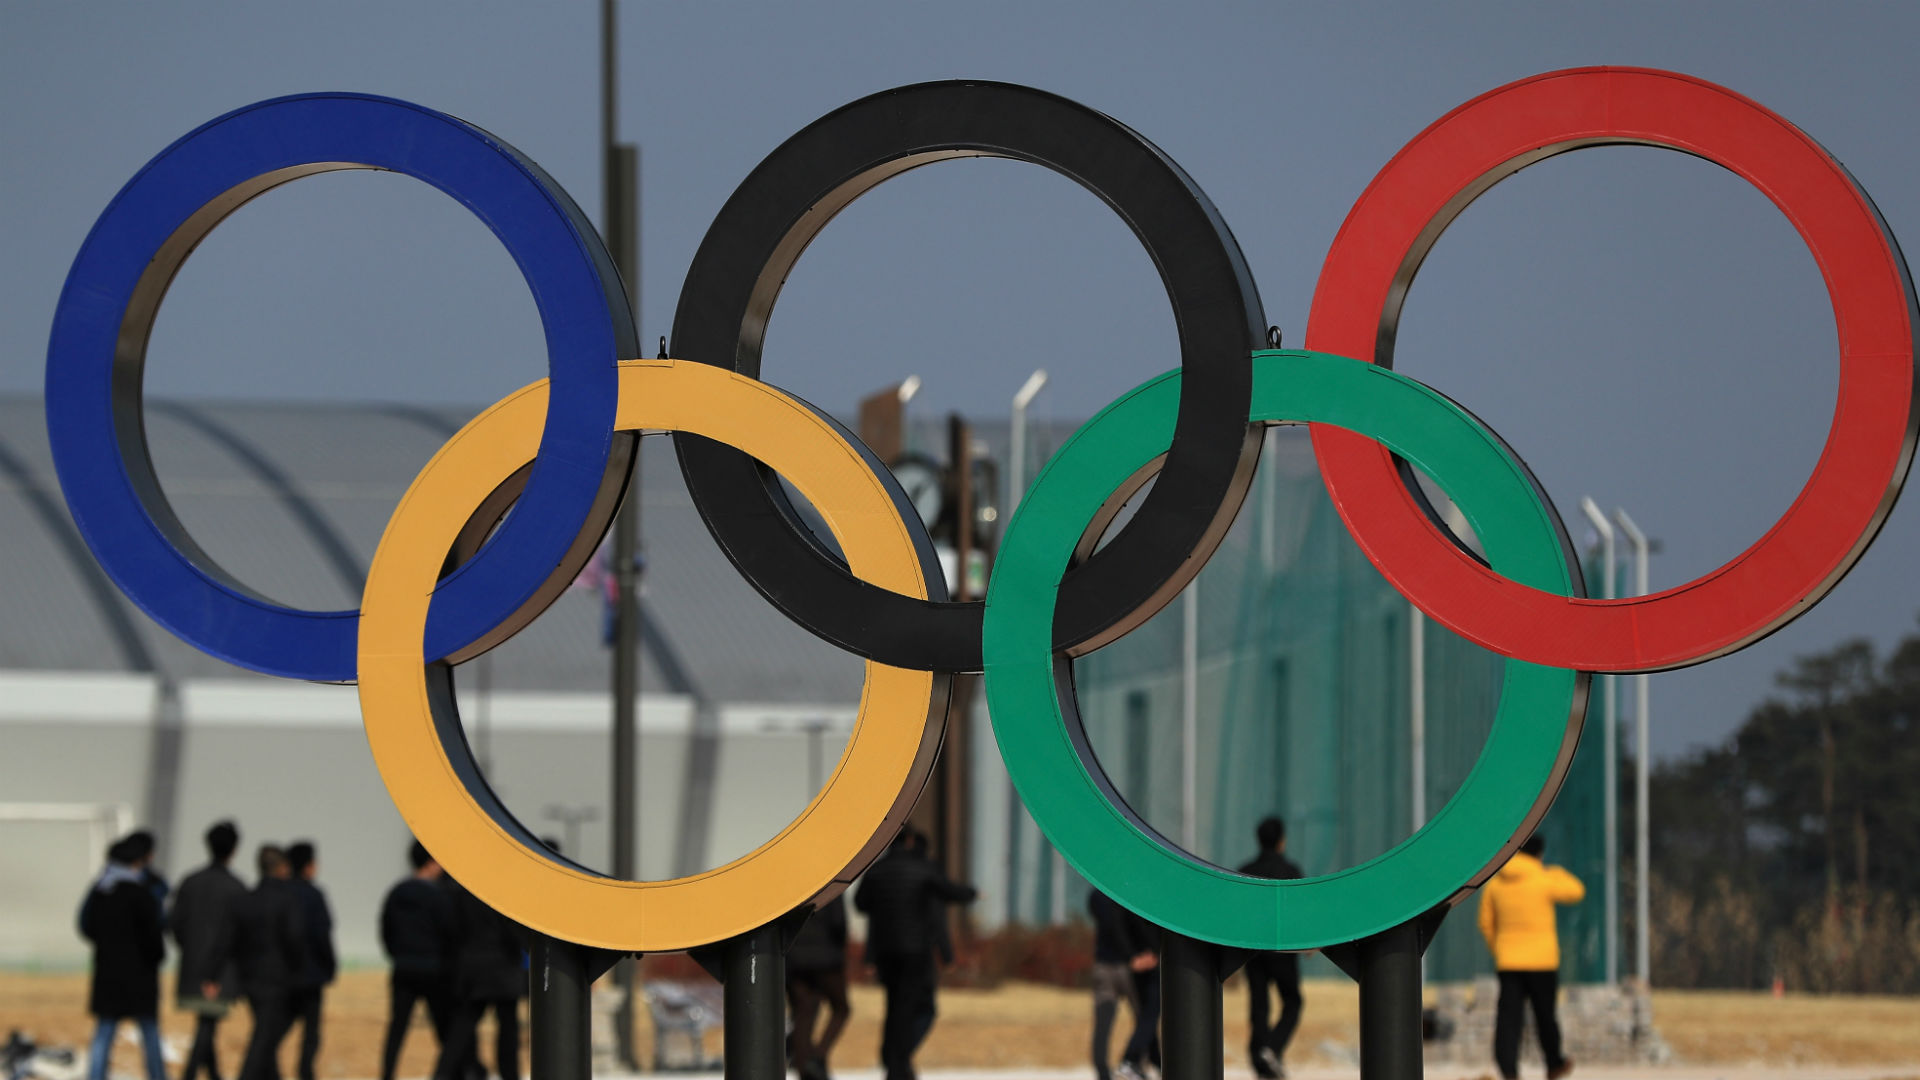 International Olympic Committee bans Russian Federation from 2018 Winter Olympics in Pyeongchang